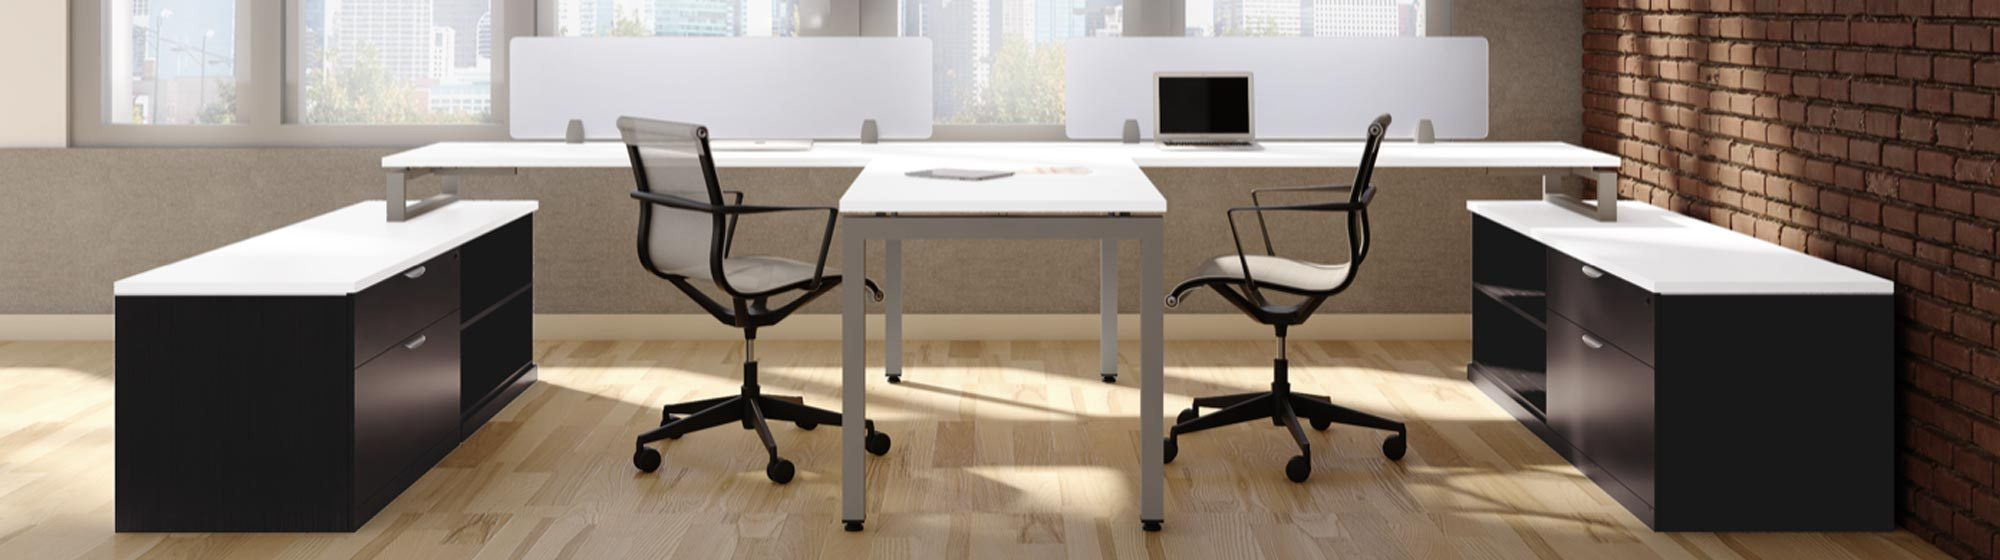 Table Tops Phoenix Office Furniture